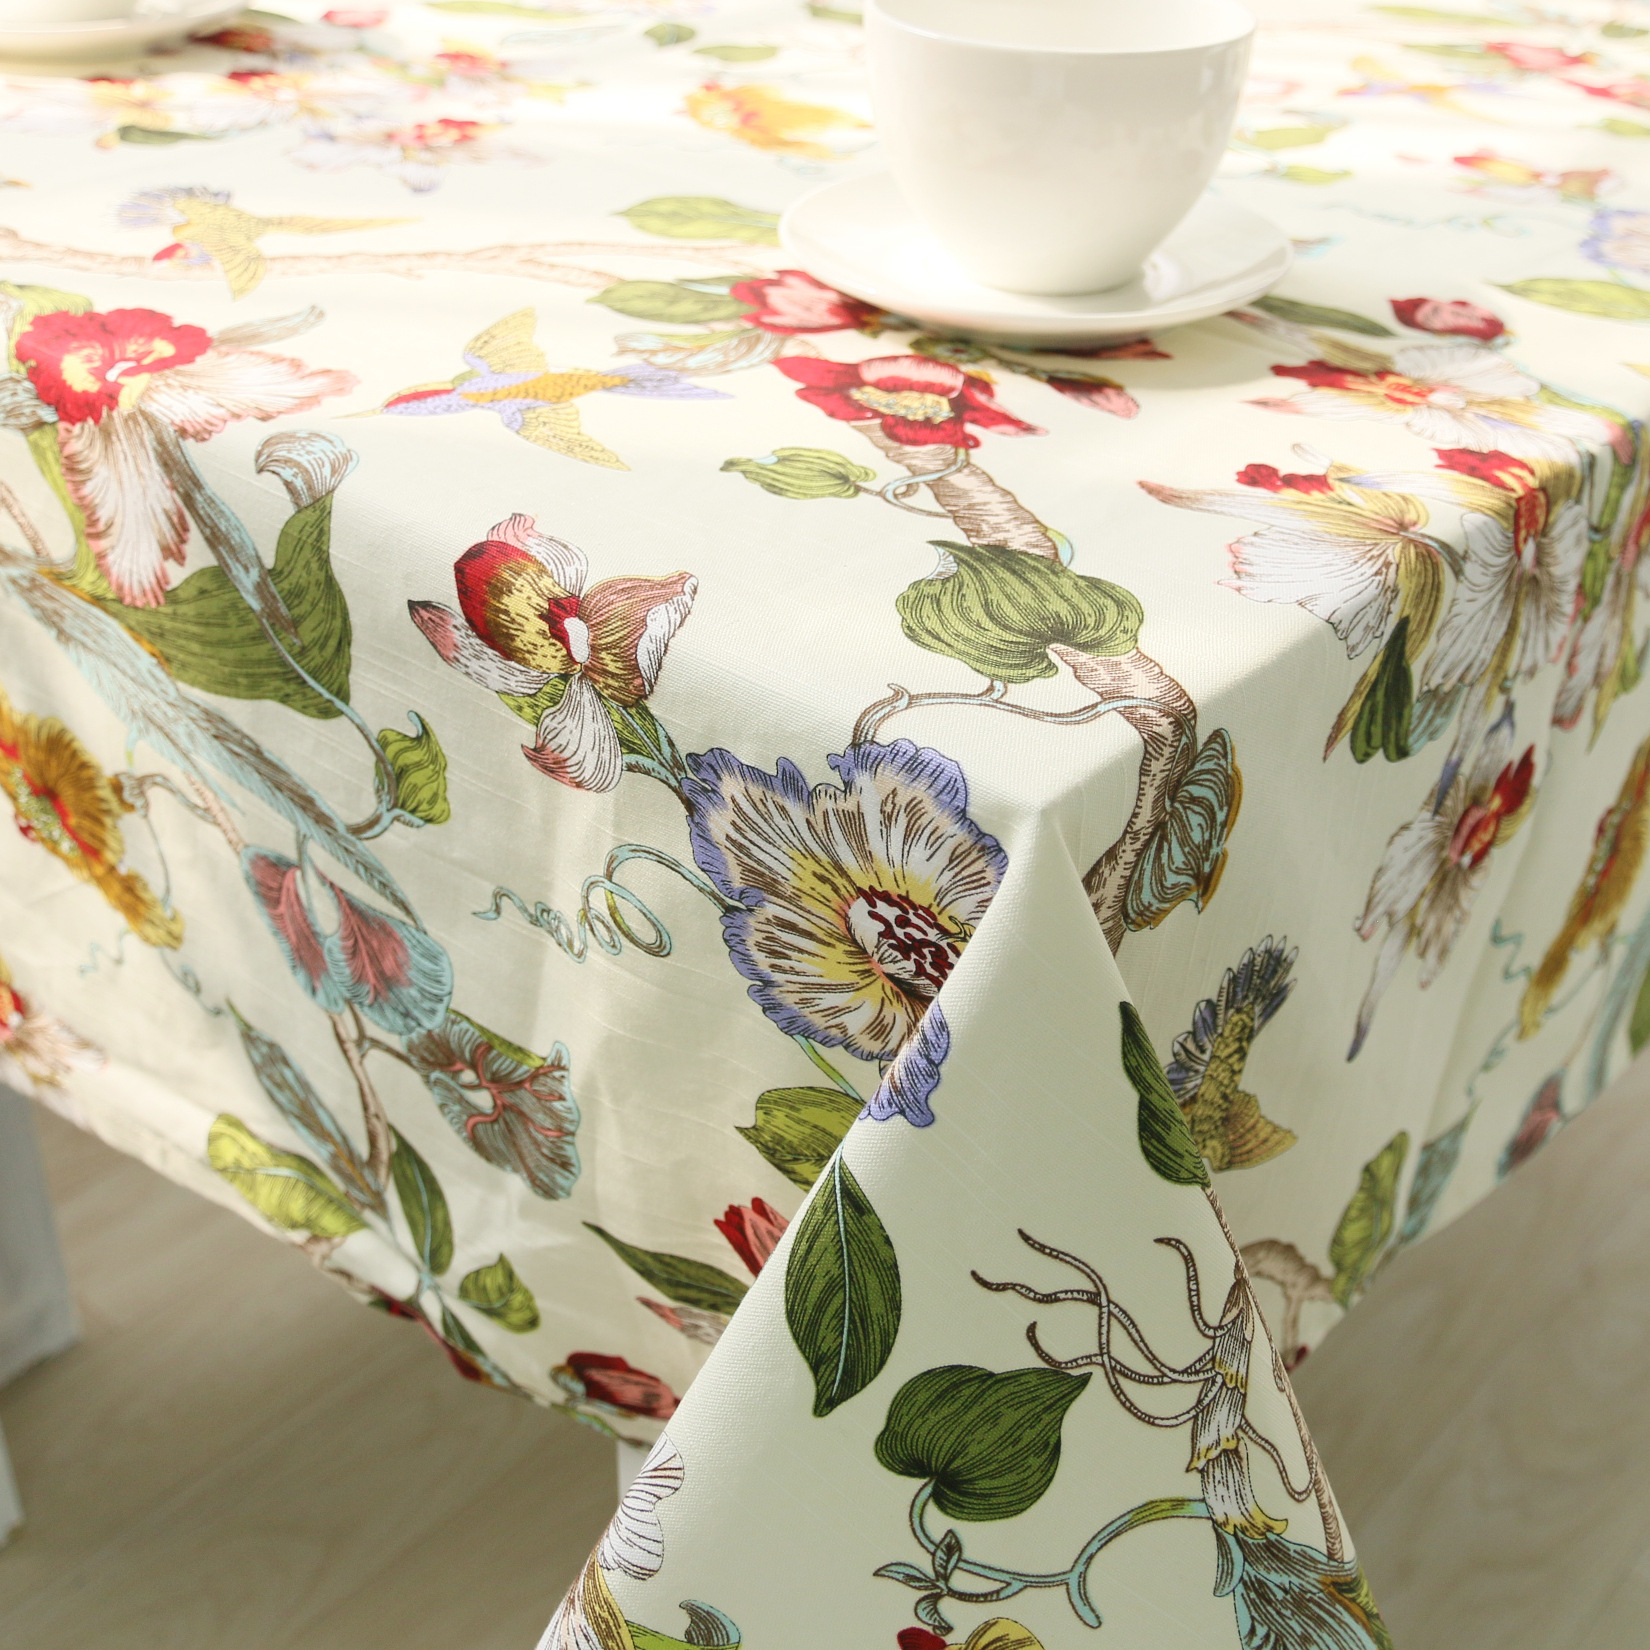 Captivating Chinese Style Floral Table Cloth Cotton Table Cover Toalha De Mesa Mantel  Nappe Wedding Tablecloths For